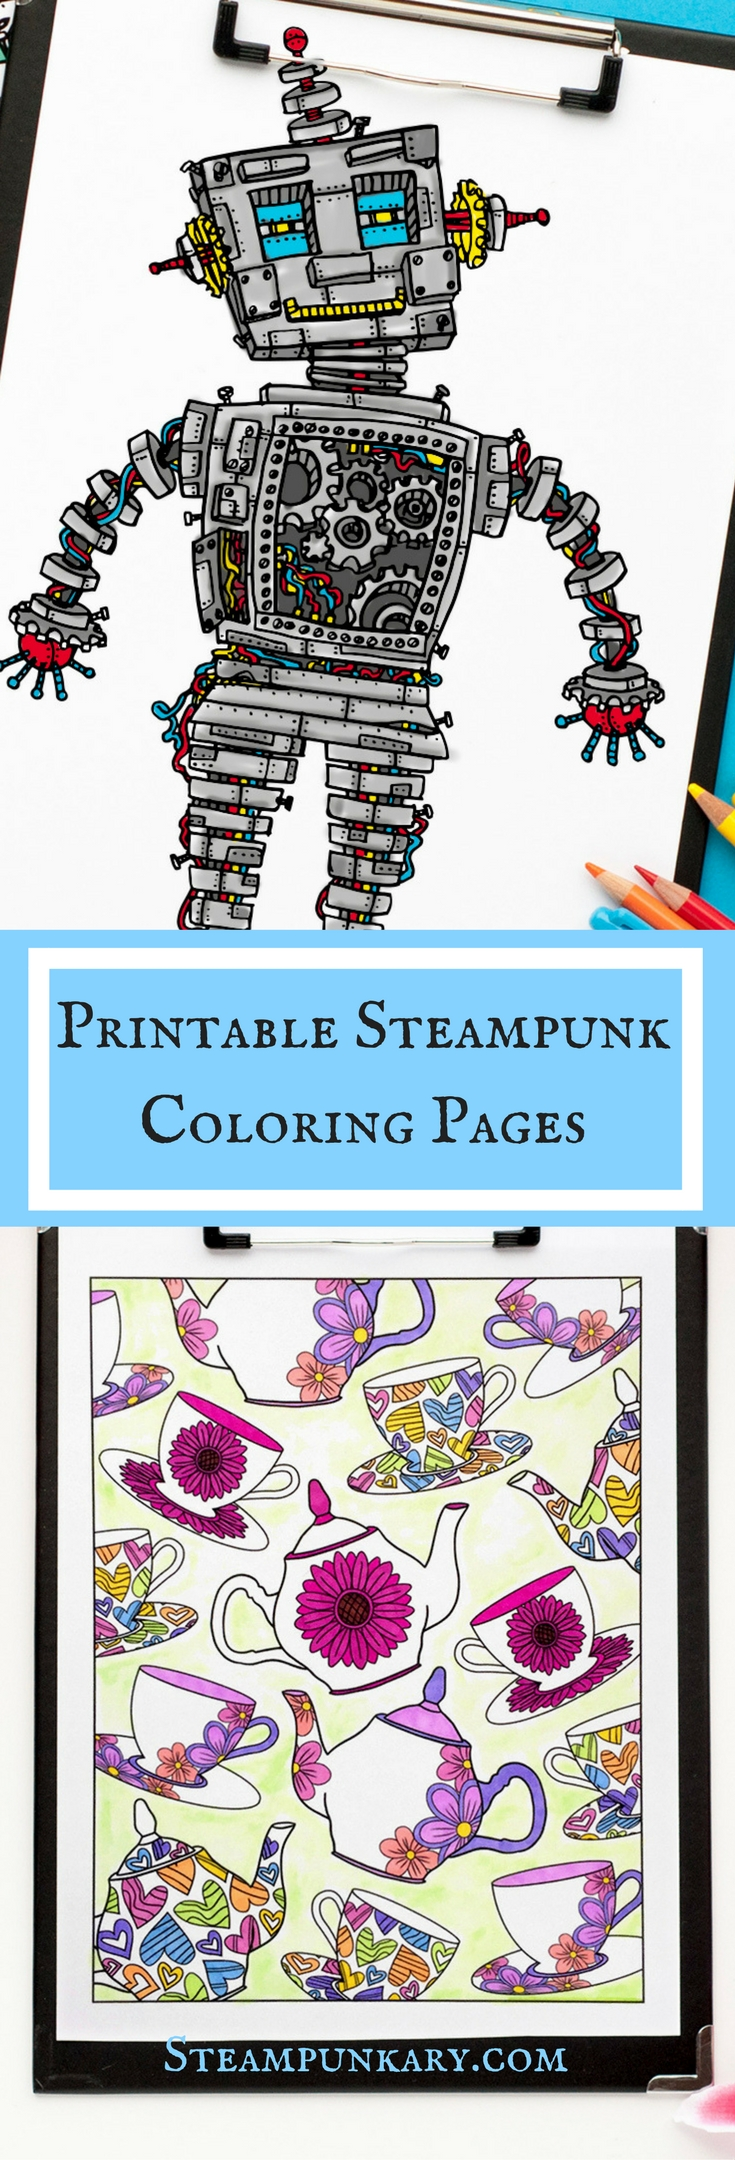 Printable Steampunk Coloring Pages